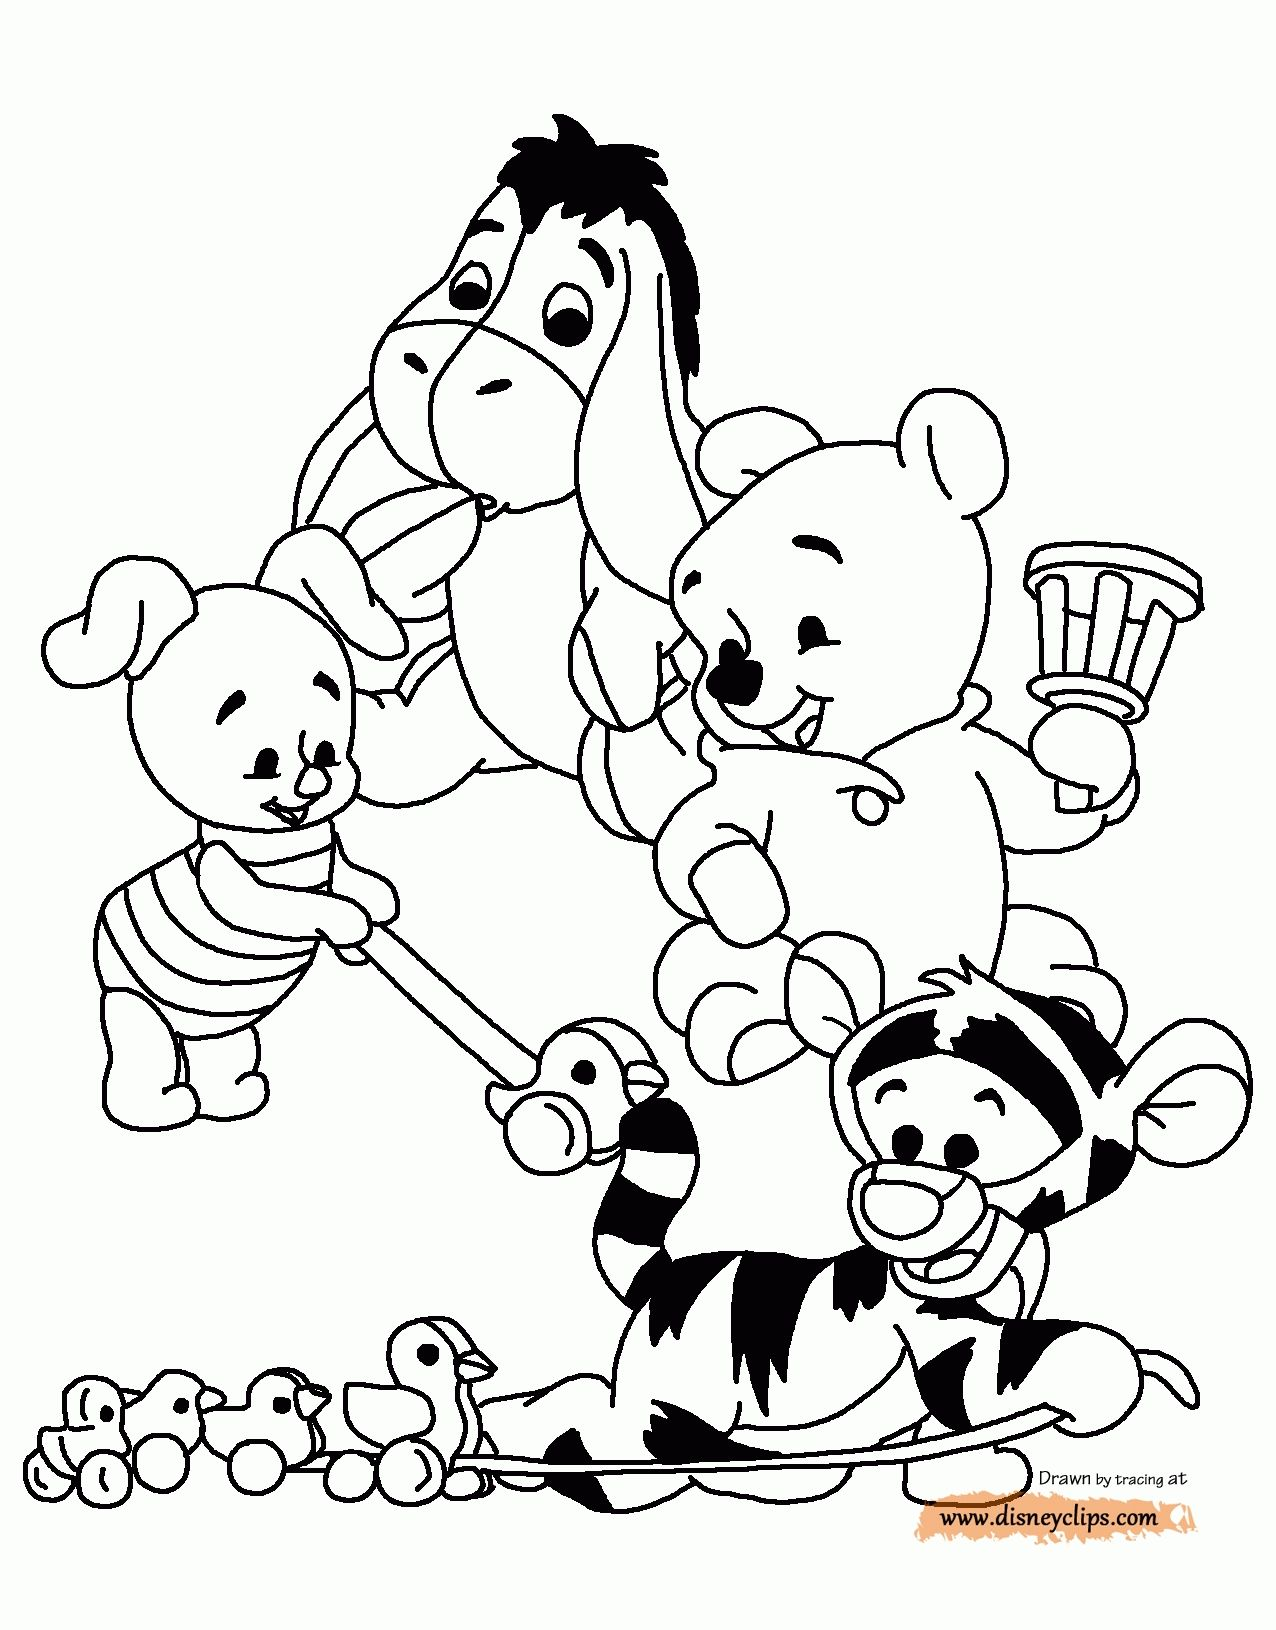 Baby Pooh Printable Coloring Pages Disney Coloring Book Pooh Within Printable Coloring Pag Baby Coloring Pages Disney Coloring Pages Disney Coloring Sheets